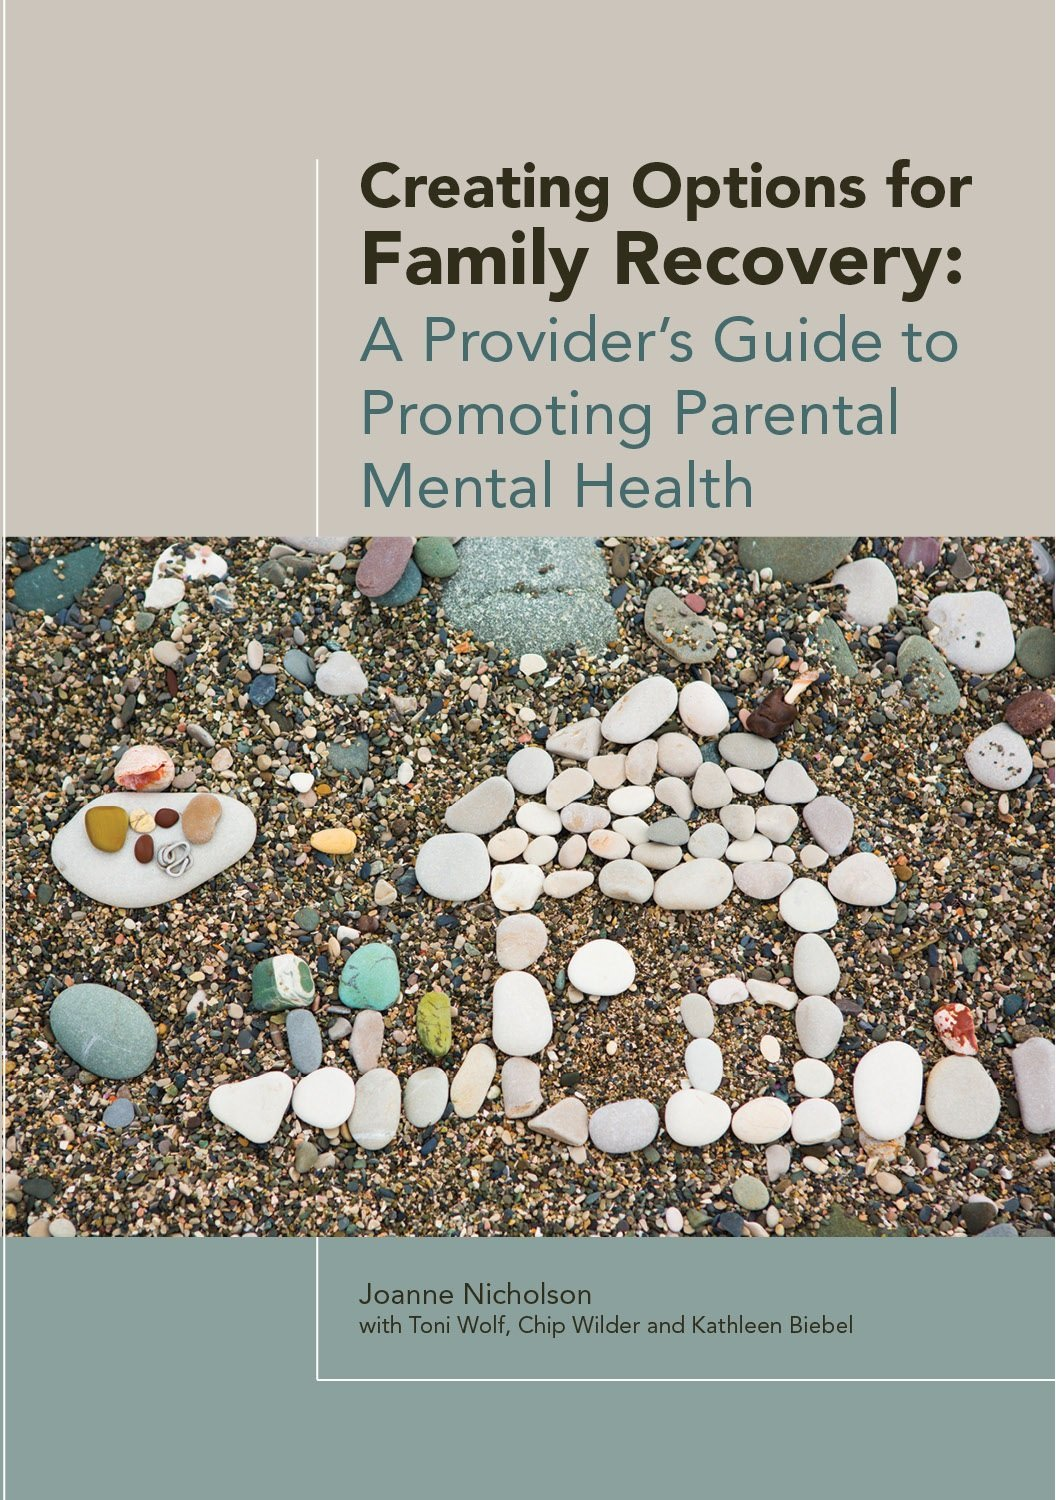 Creating Options for Family Recovery